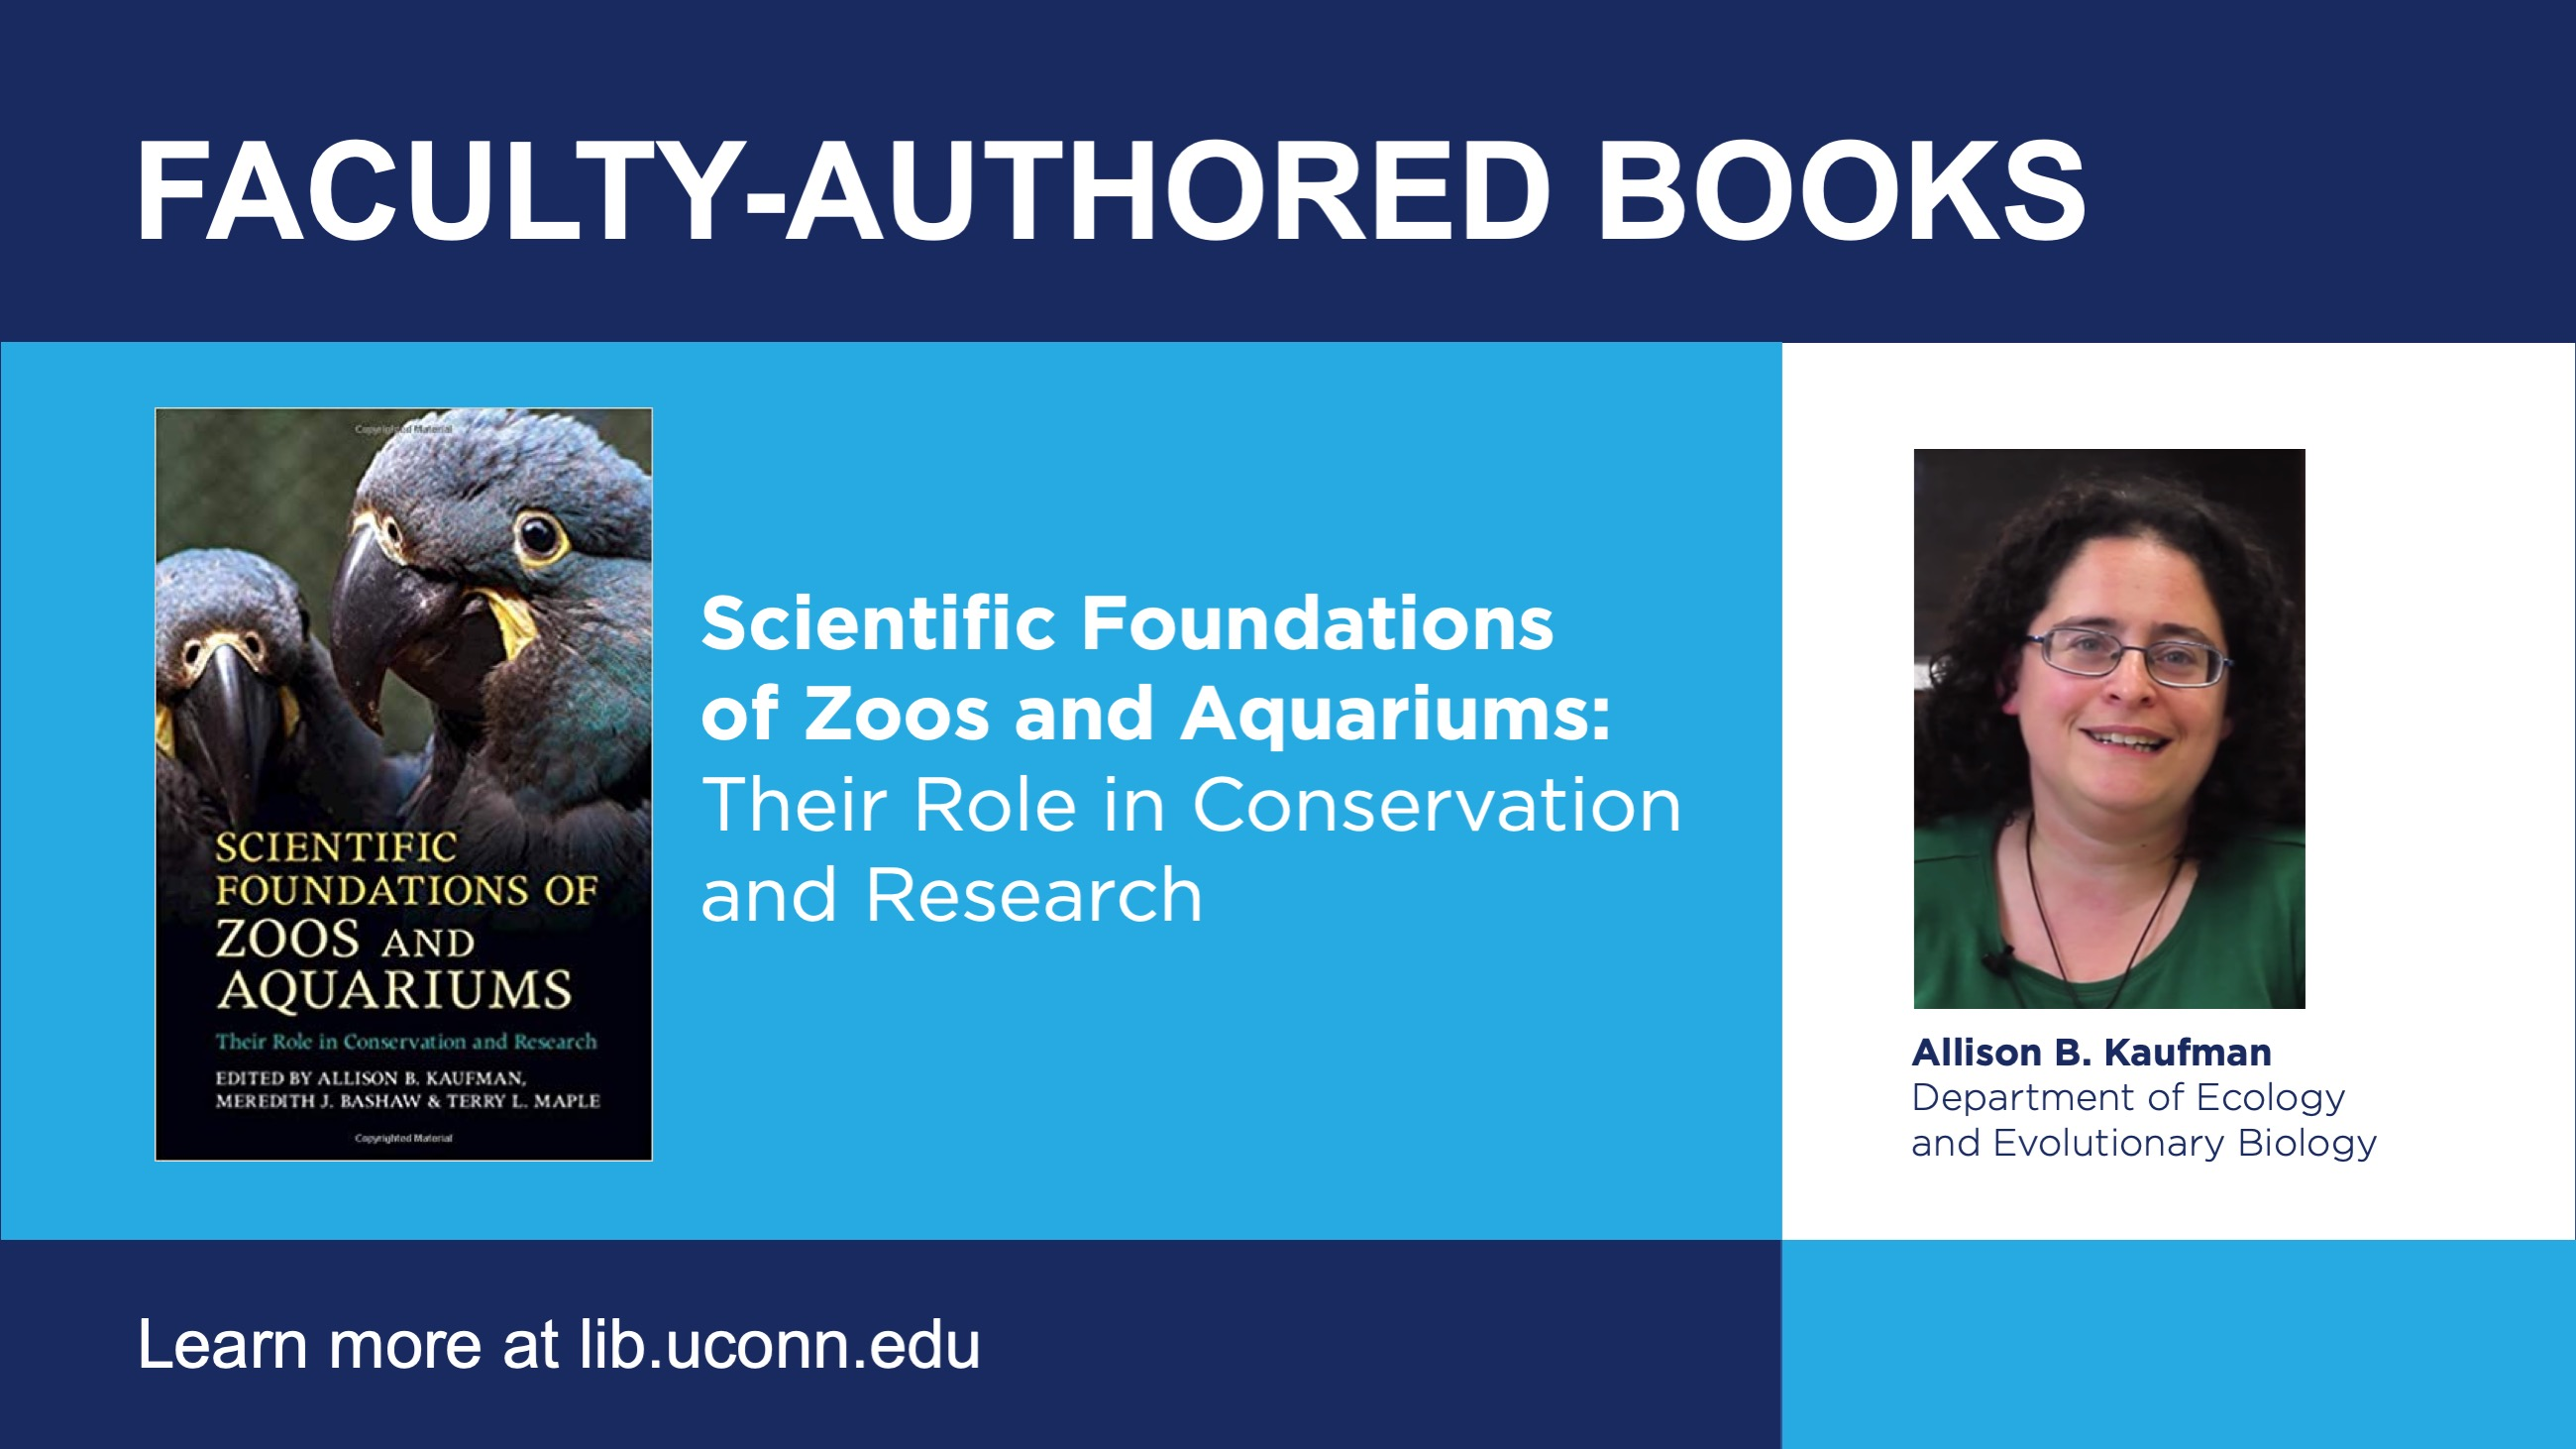 Faculty-Authored Books Scientific Foundations of Zoos and Aquariums: Their Role in Conservation and Research Allison B. Kaufman, Department of Ecology and Evolutionary Biology Learn More at lib.uconn.edu